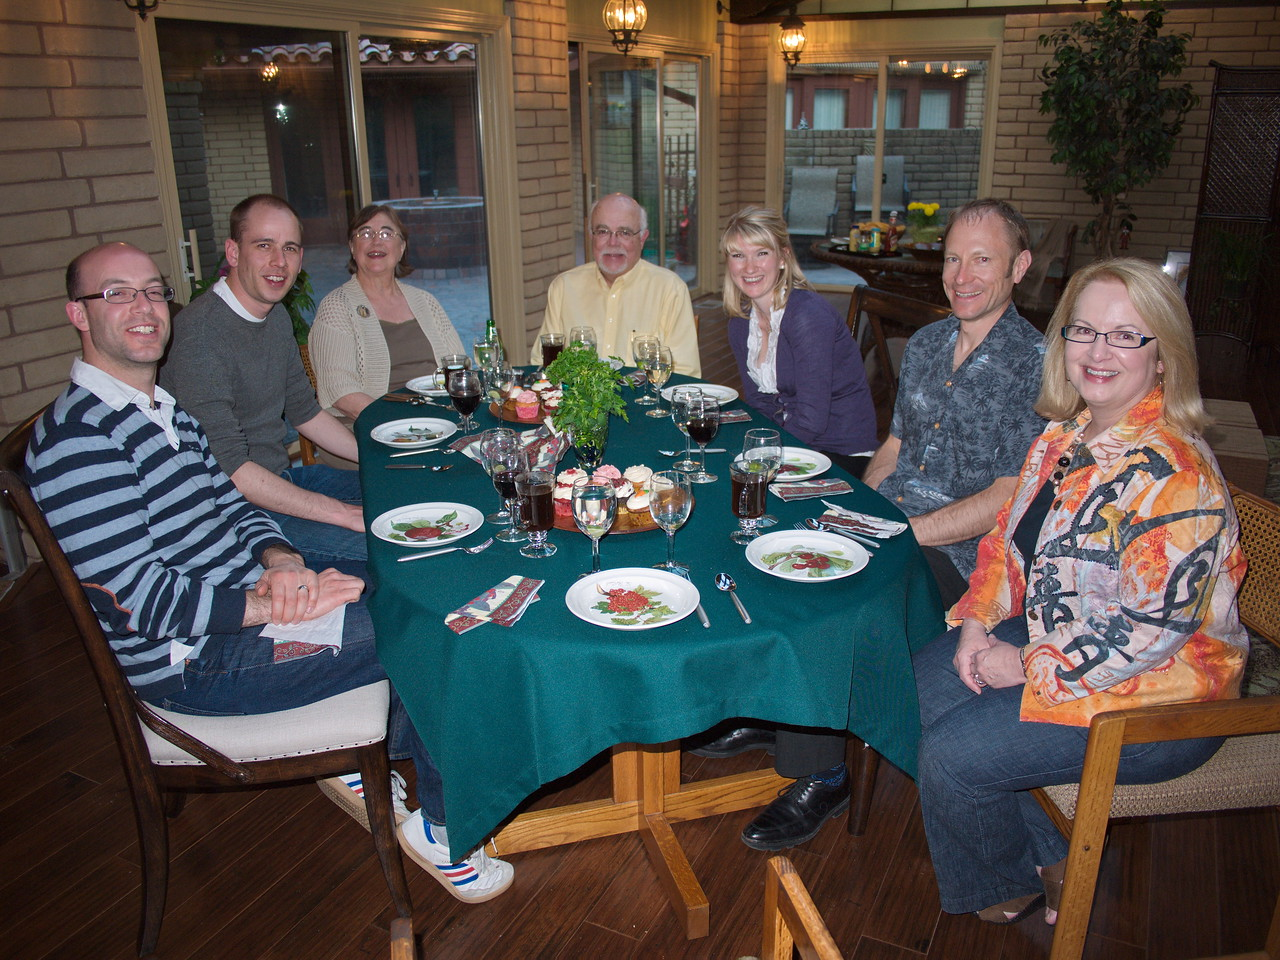 Family dinner at the home of Lee and Kay Rockwell (3rd from left), joined by Marla and Gary Kraft (far right and 4th from right). Lee was taking the photo.